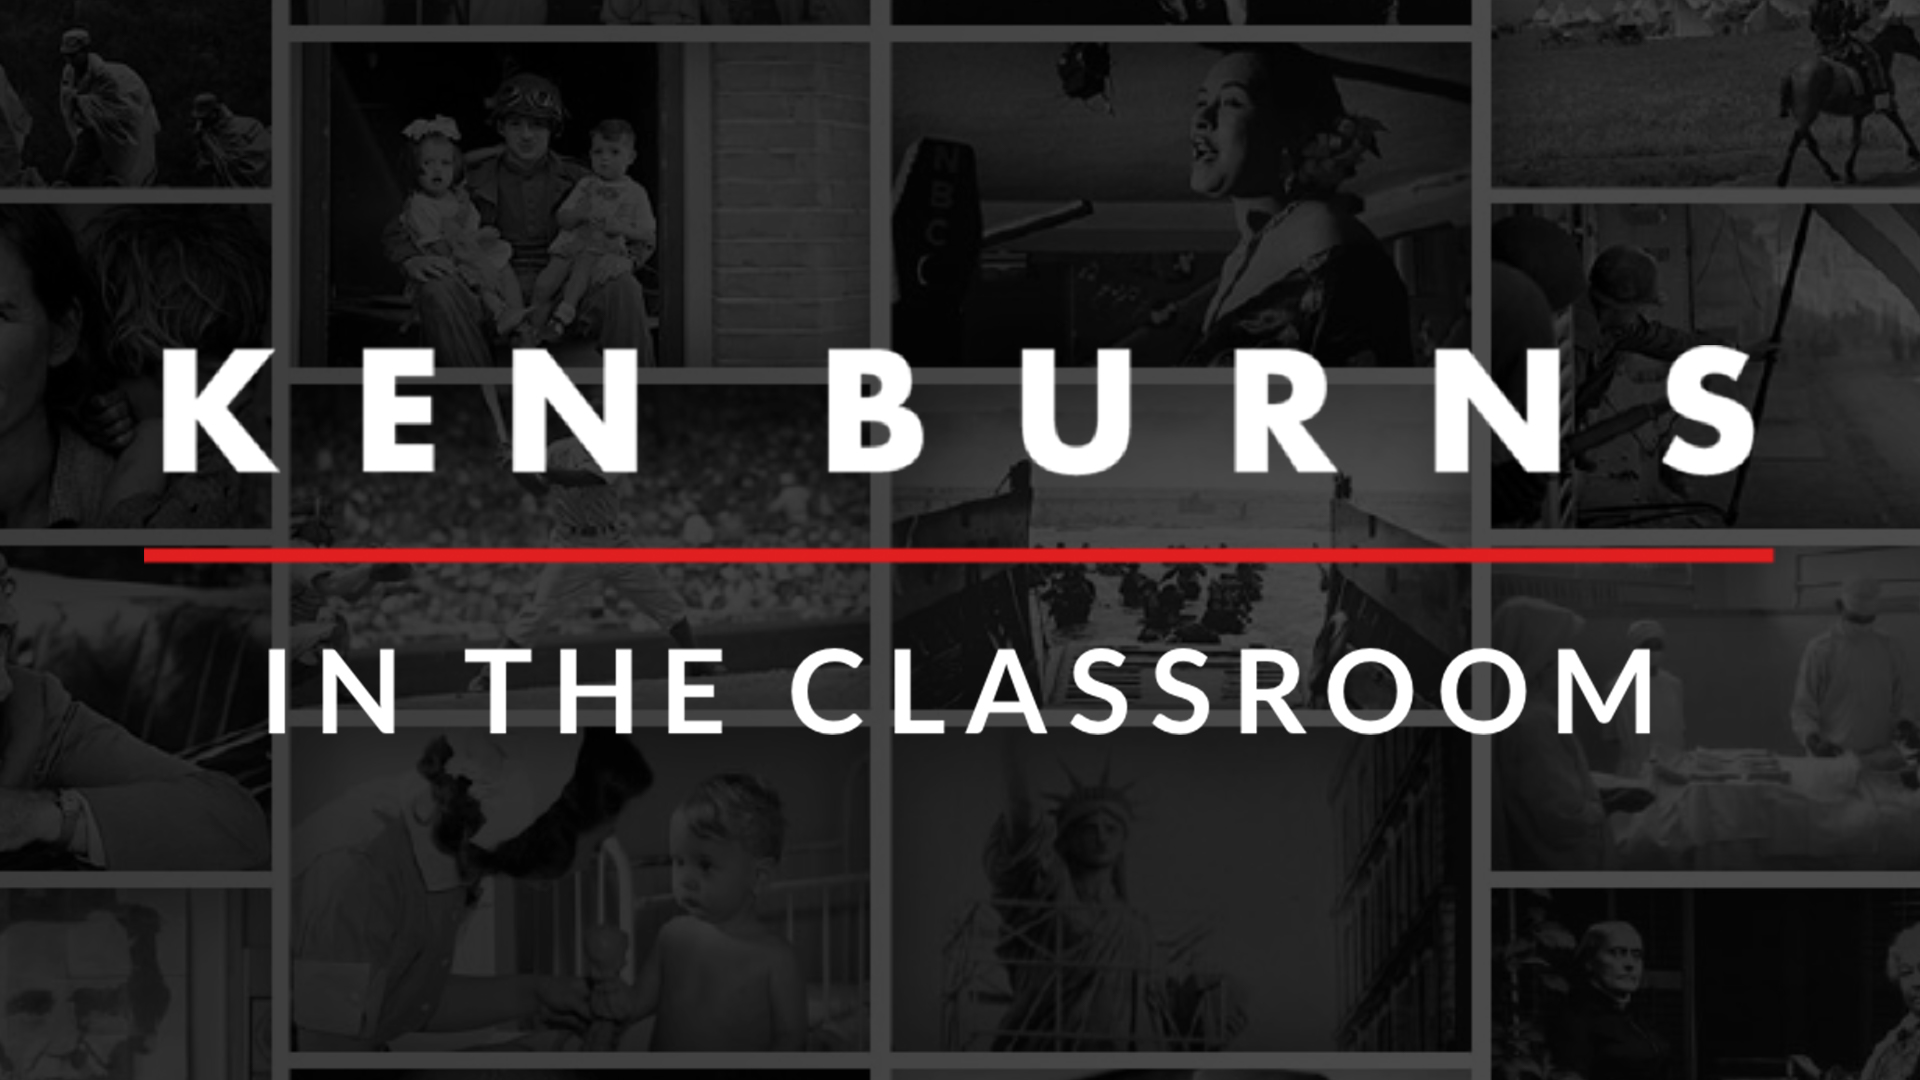 Ken Burns in the Classroom | PBS LearningMedia